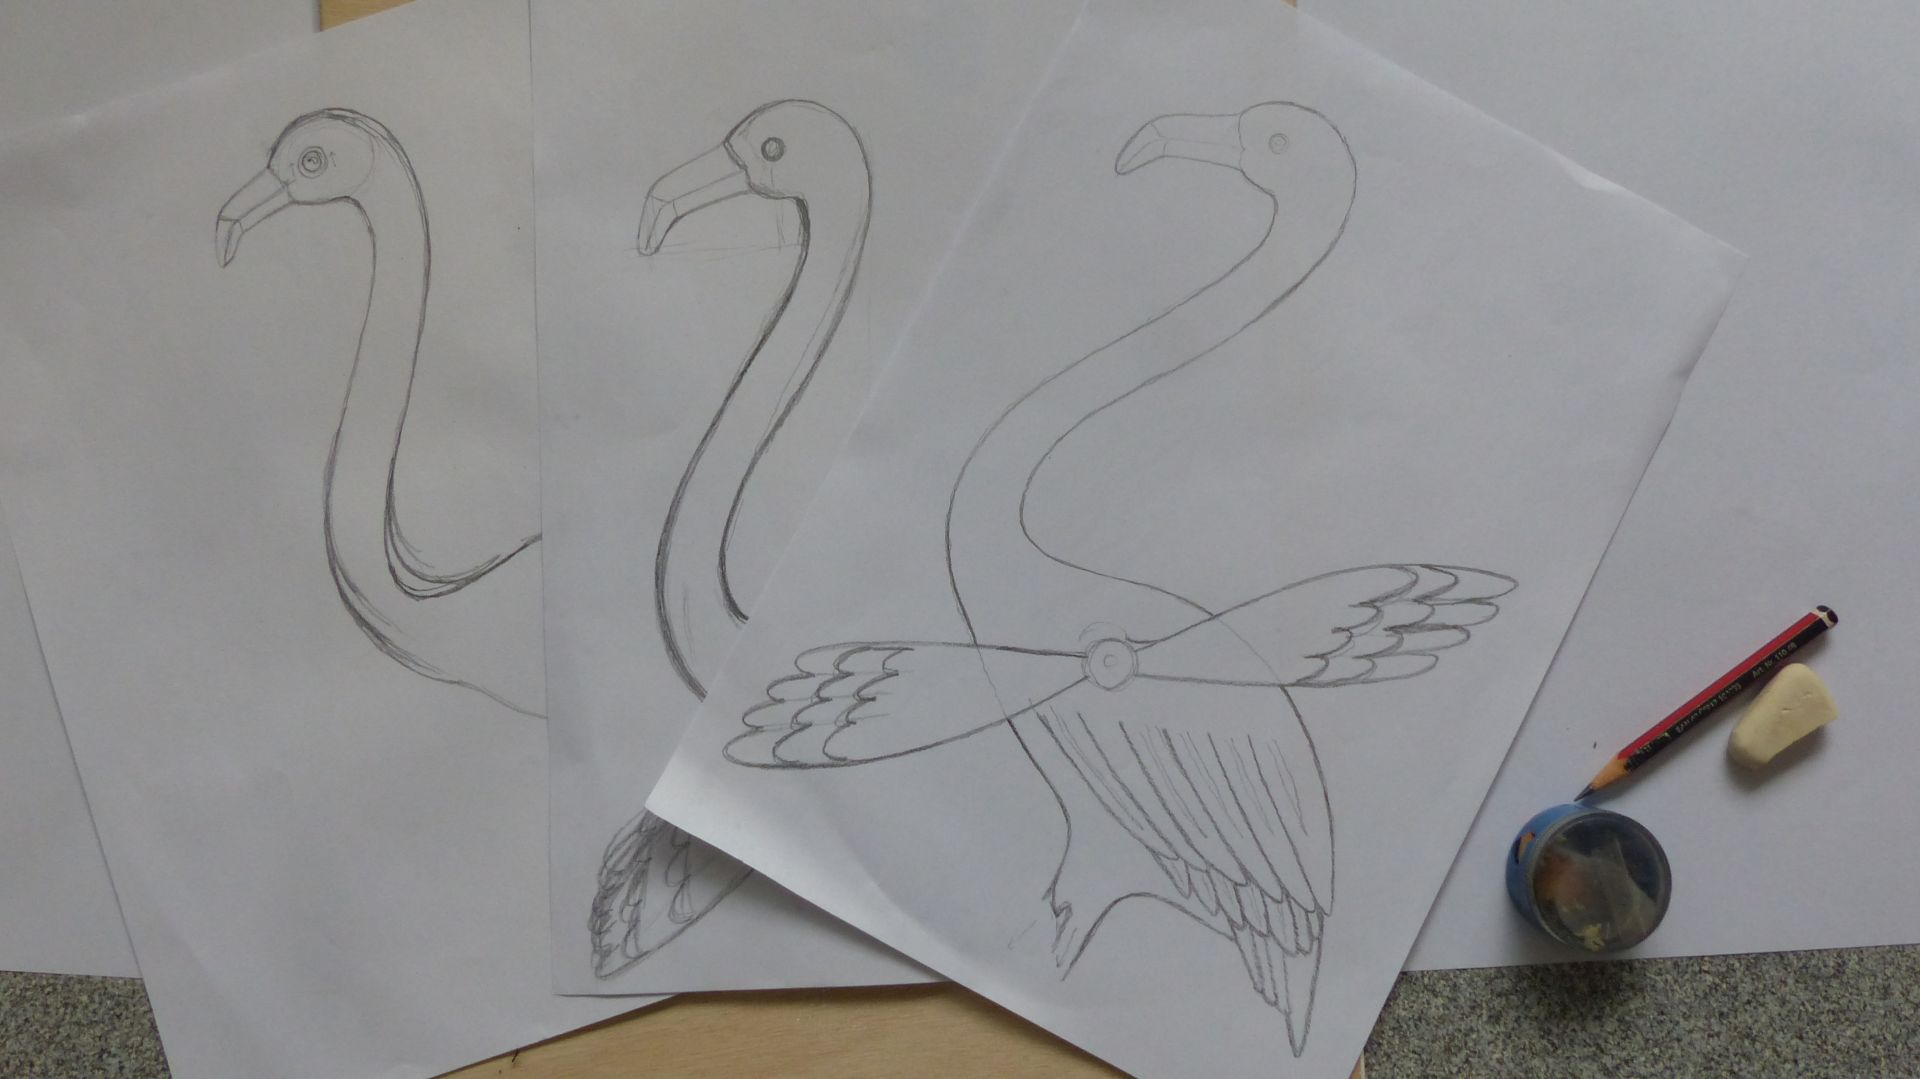 06 for post P2970937 flamingo sketches